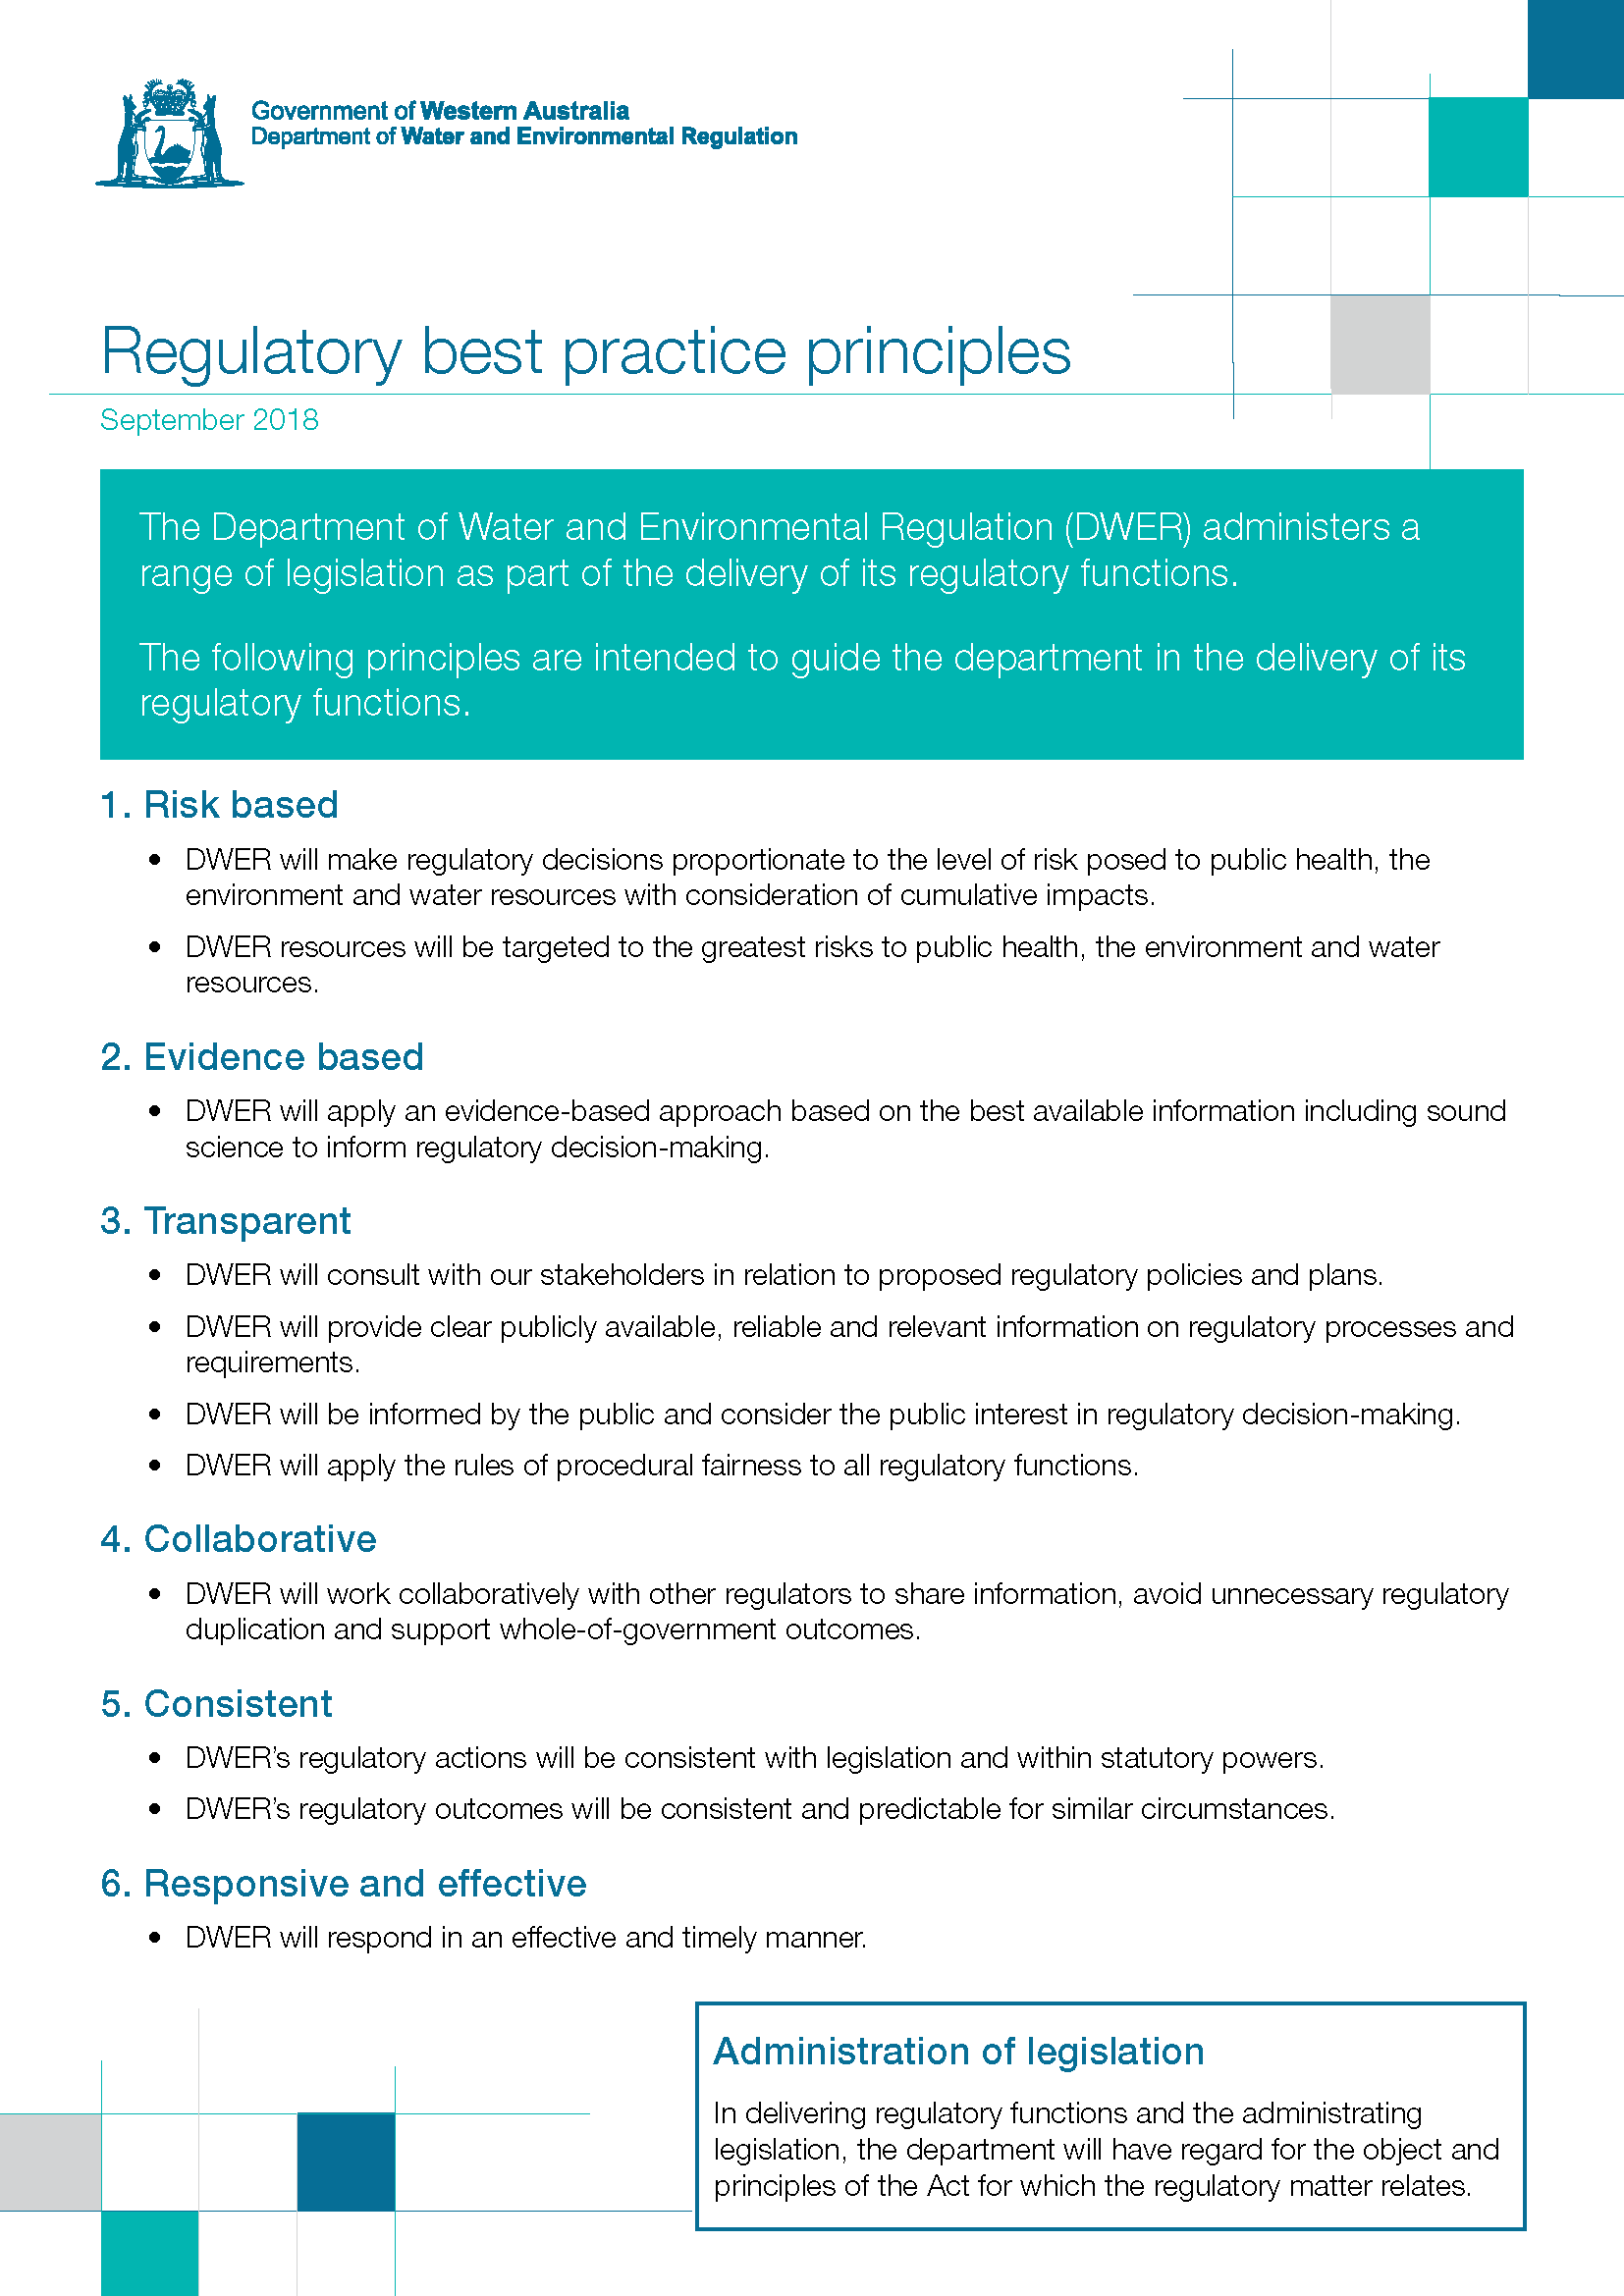 201809 DWER Key Regulatory Principles new